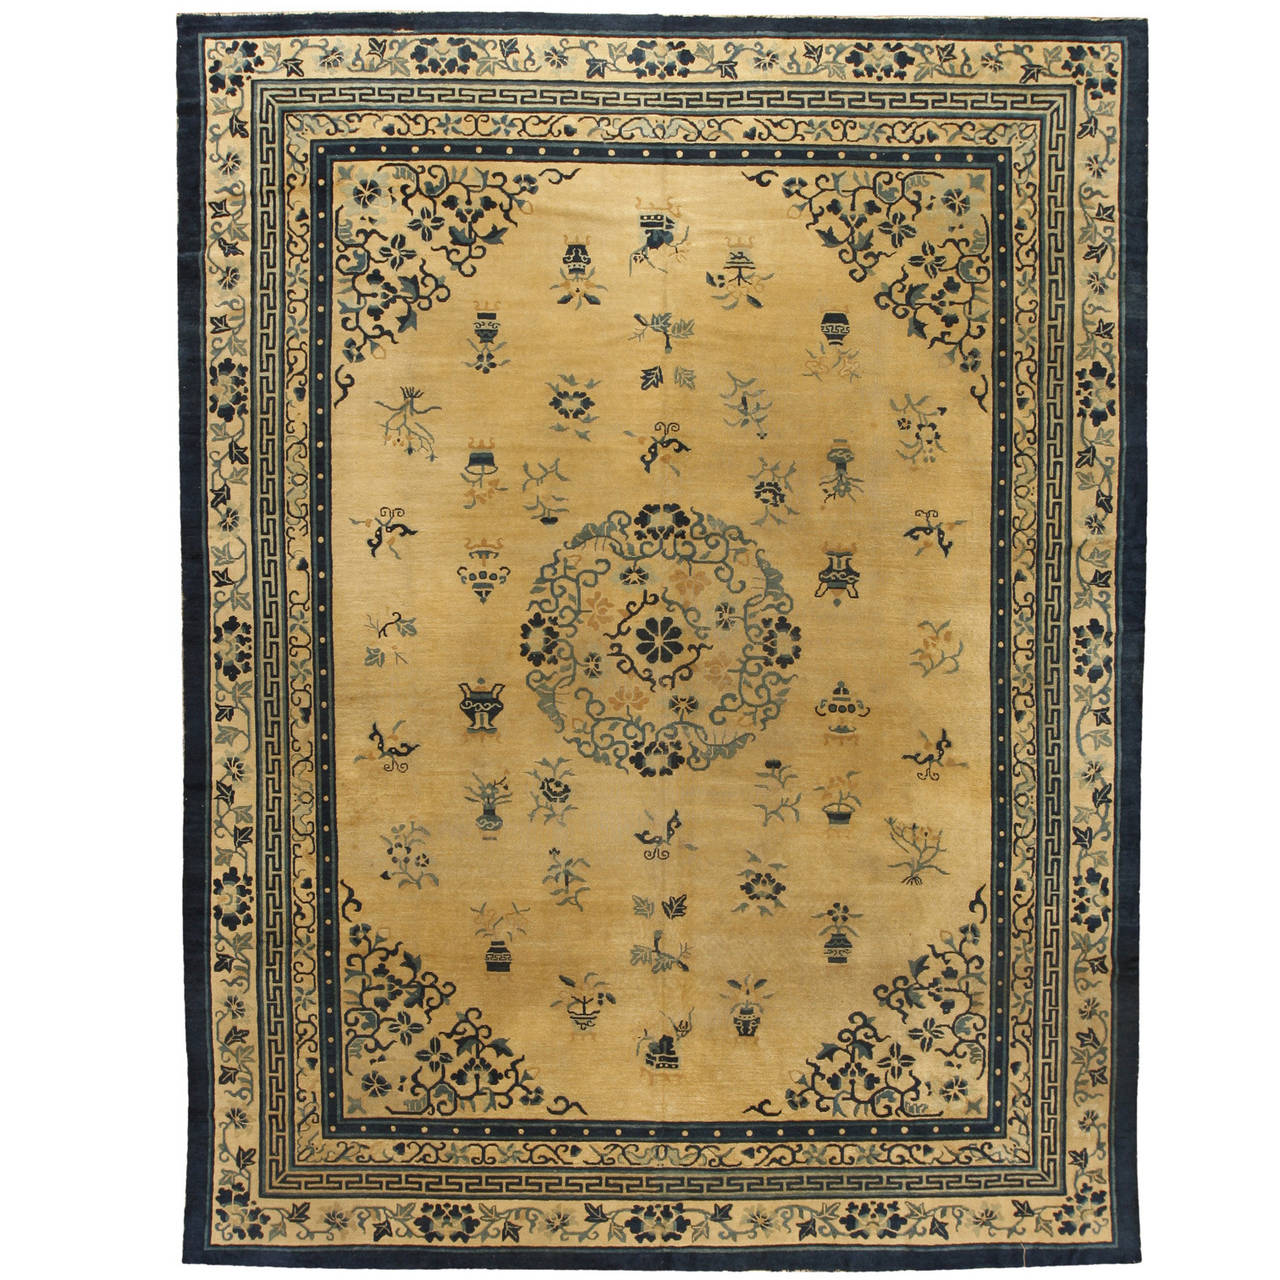 Antique Chinese Rug: Antique 19th Century Chinese Carpet For Sale At 1stdibs